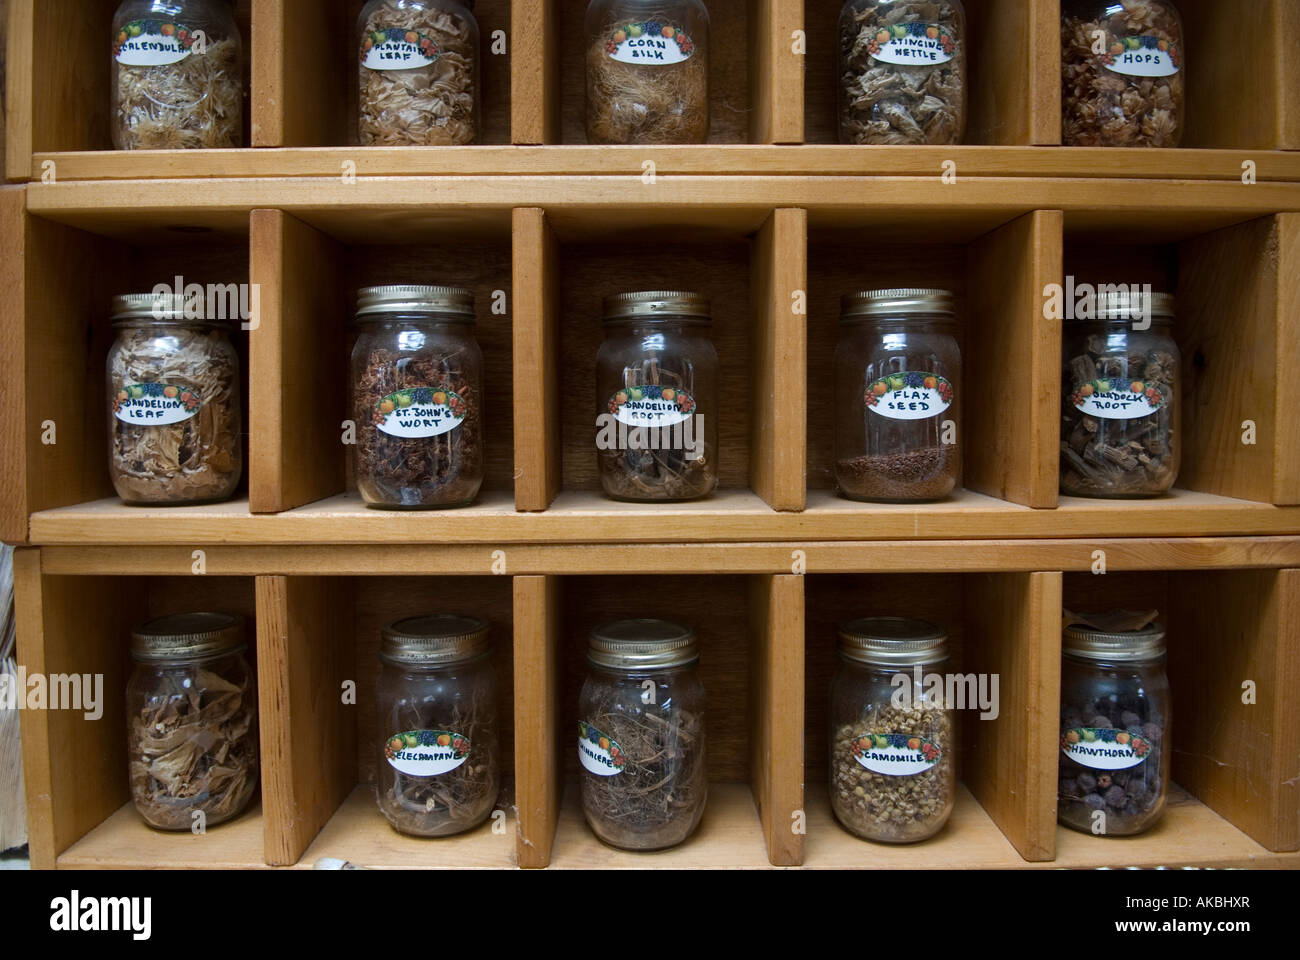 spice rack with glass jars and labeled spice jars - Spice Jars